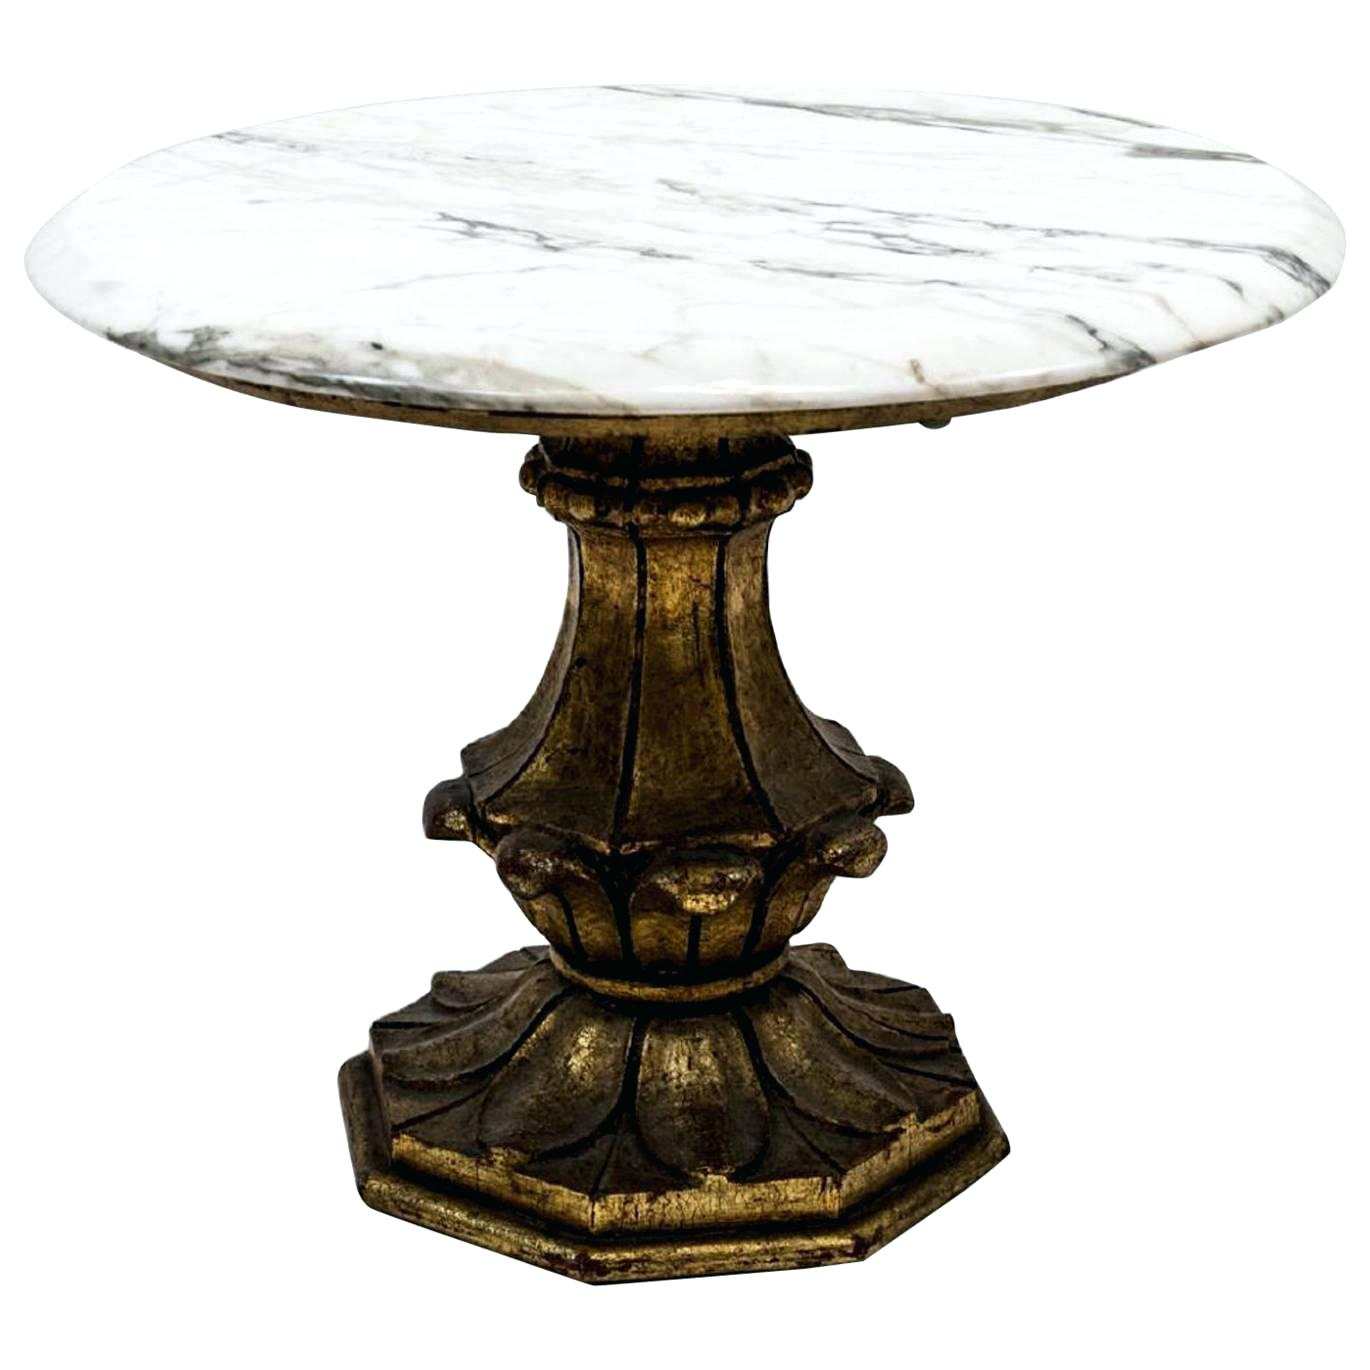 vintage round accent table with marble top and base tables sun umbrella large antique dining room nesting console jcpenney couches kid runner plexiglass square cloth tablecloths